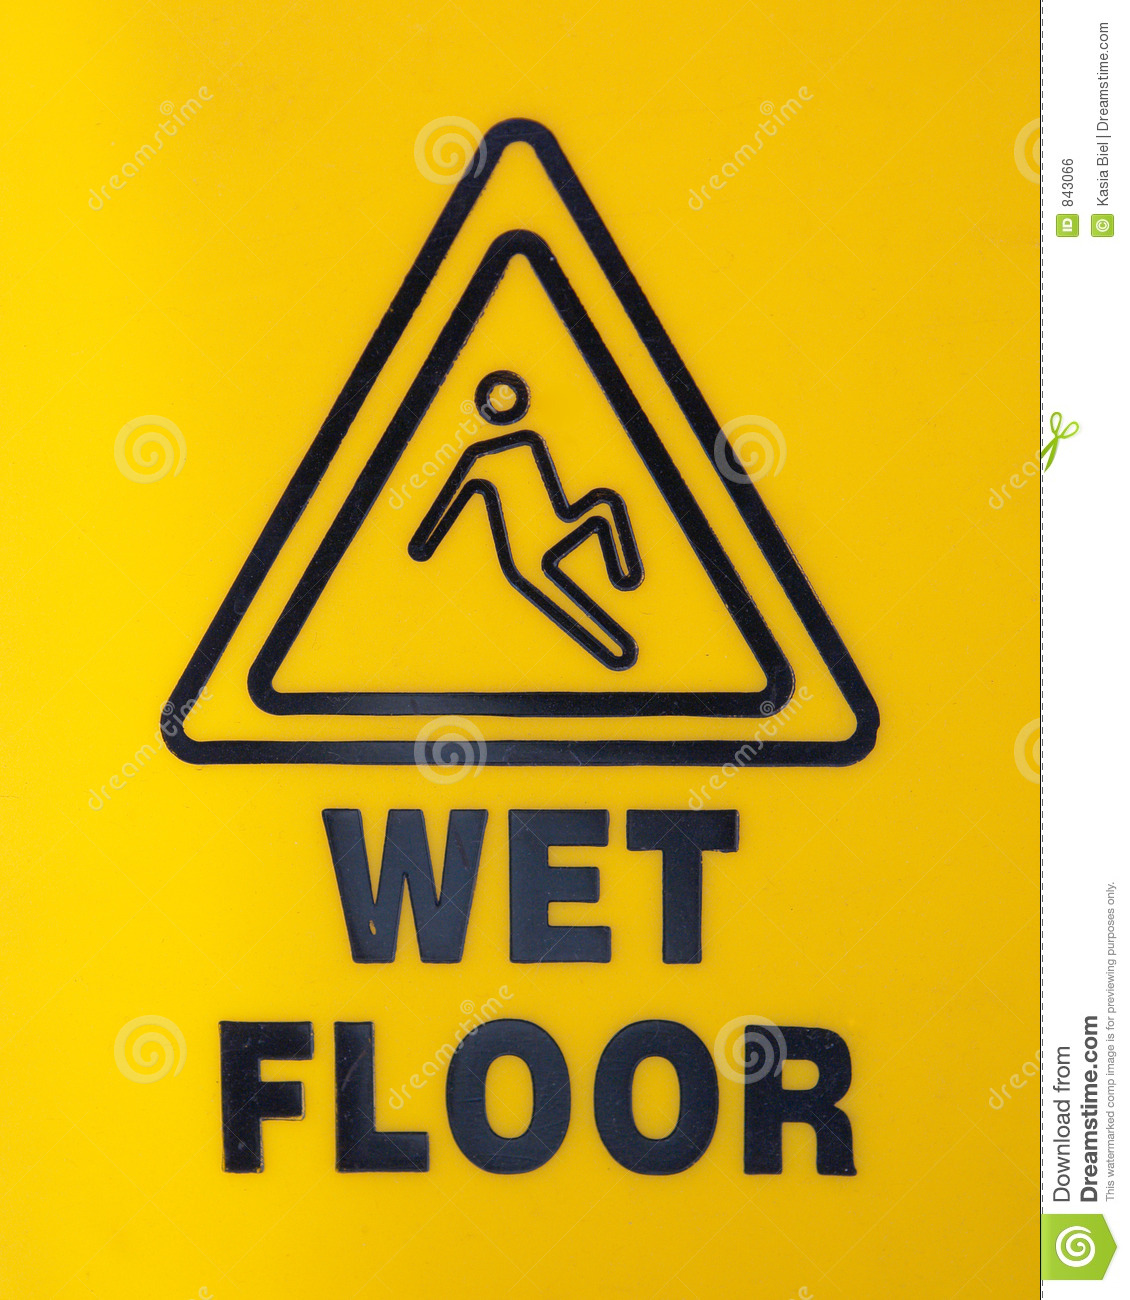 Wet Floor Sign Royalty Free Stock Image Image 843066